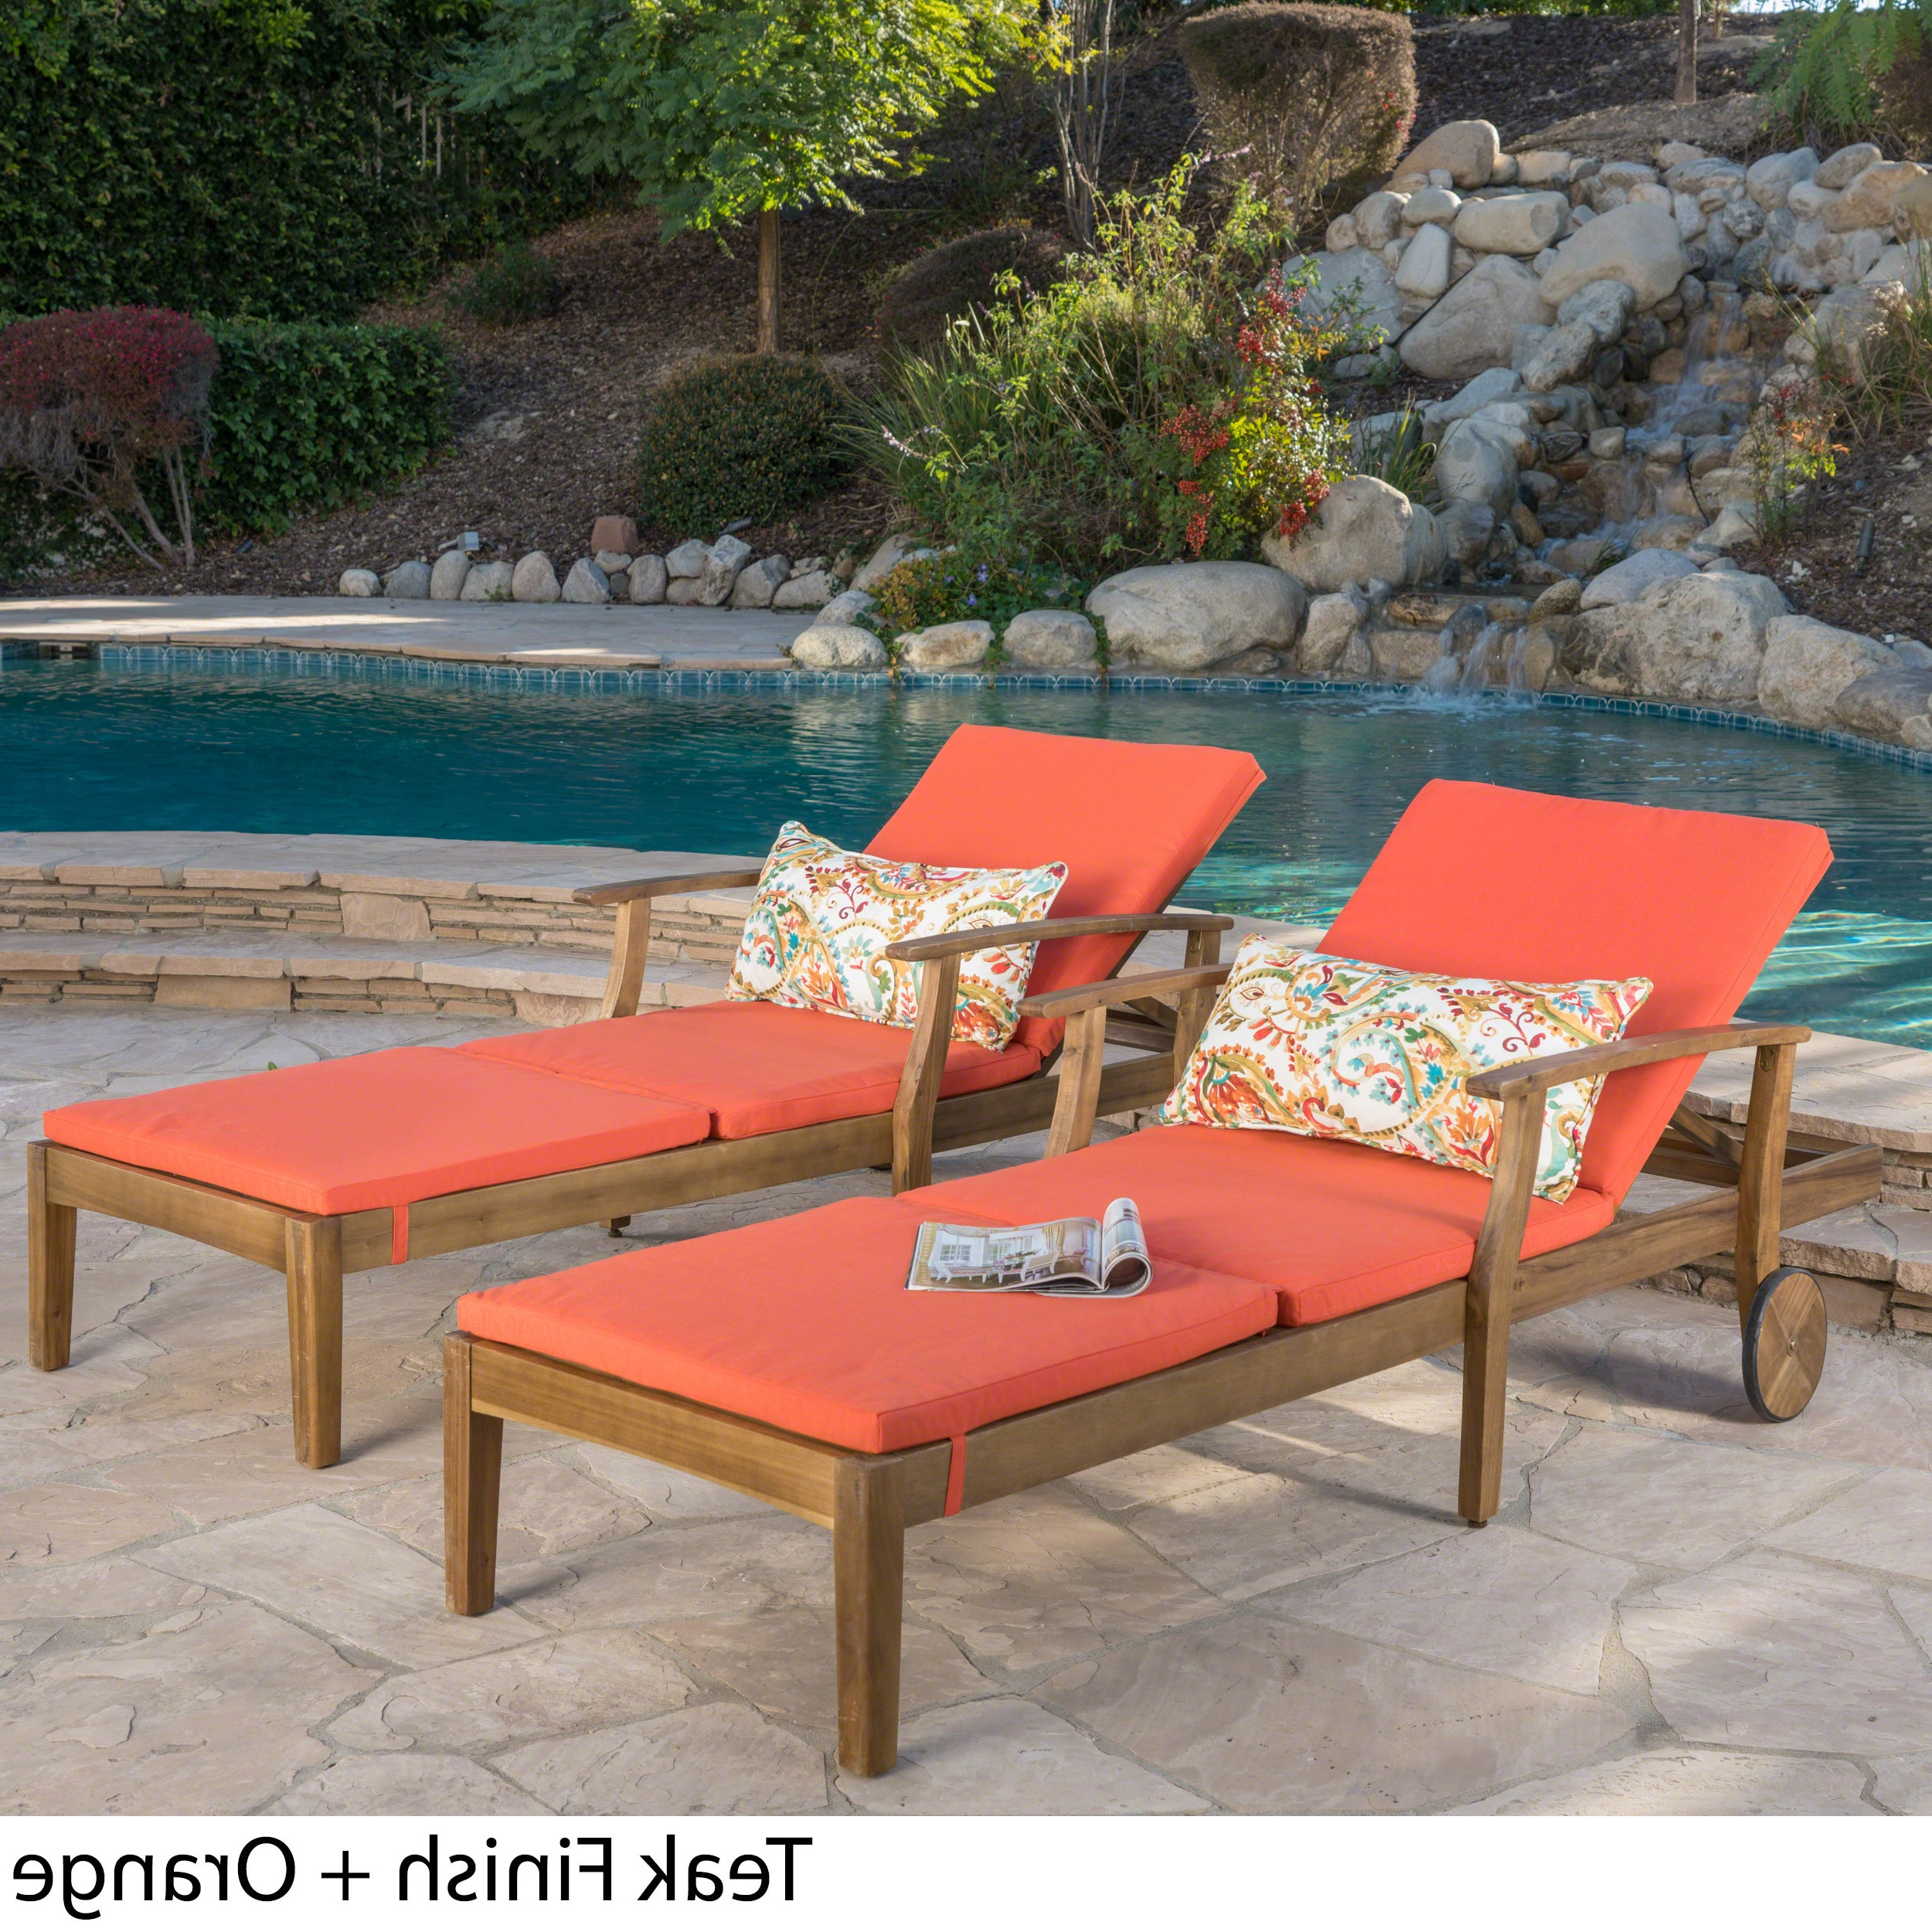 Well Known Christopher Knight Home Perla Outdoor Acacia Wood Chaise Lounge With  Cushion (Set Of 2) By With Outdoor Acacia Wood Chaise Lounges And Cushion Sets (View 23 of 25)